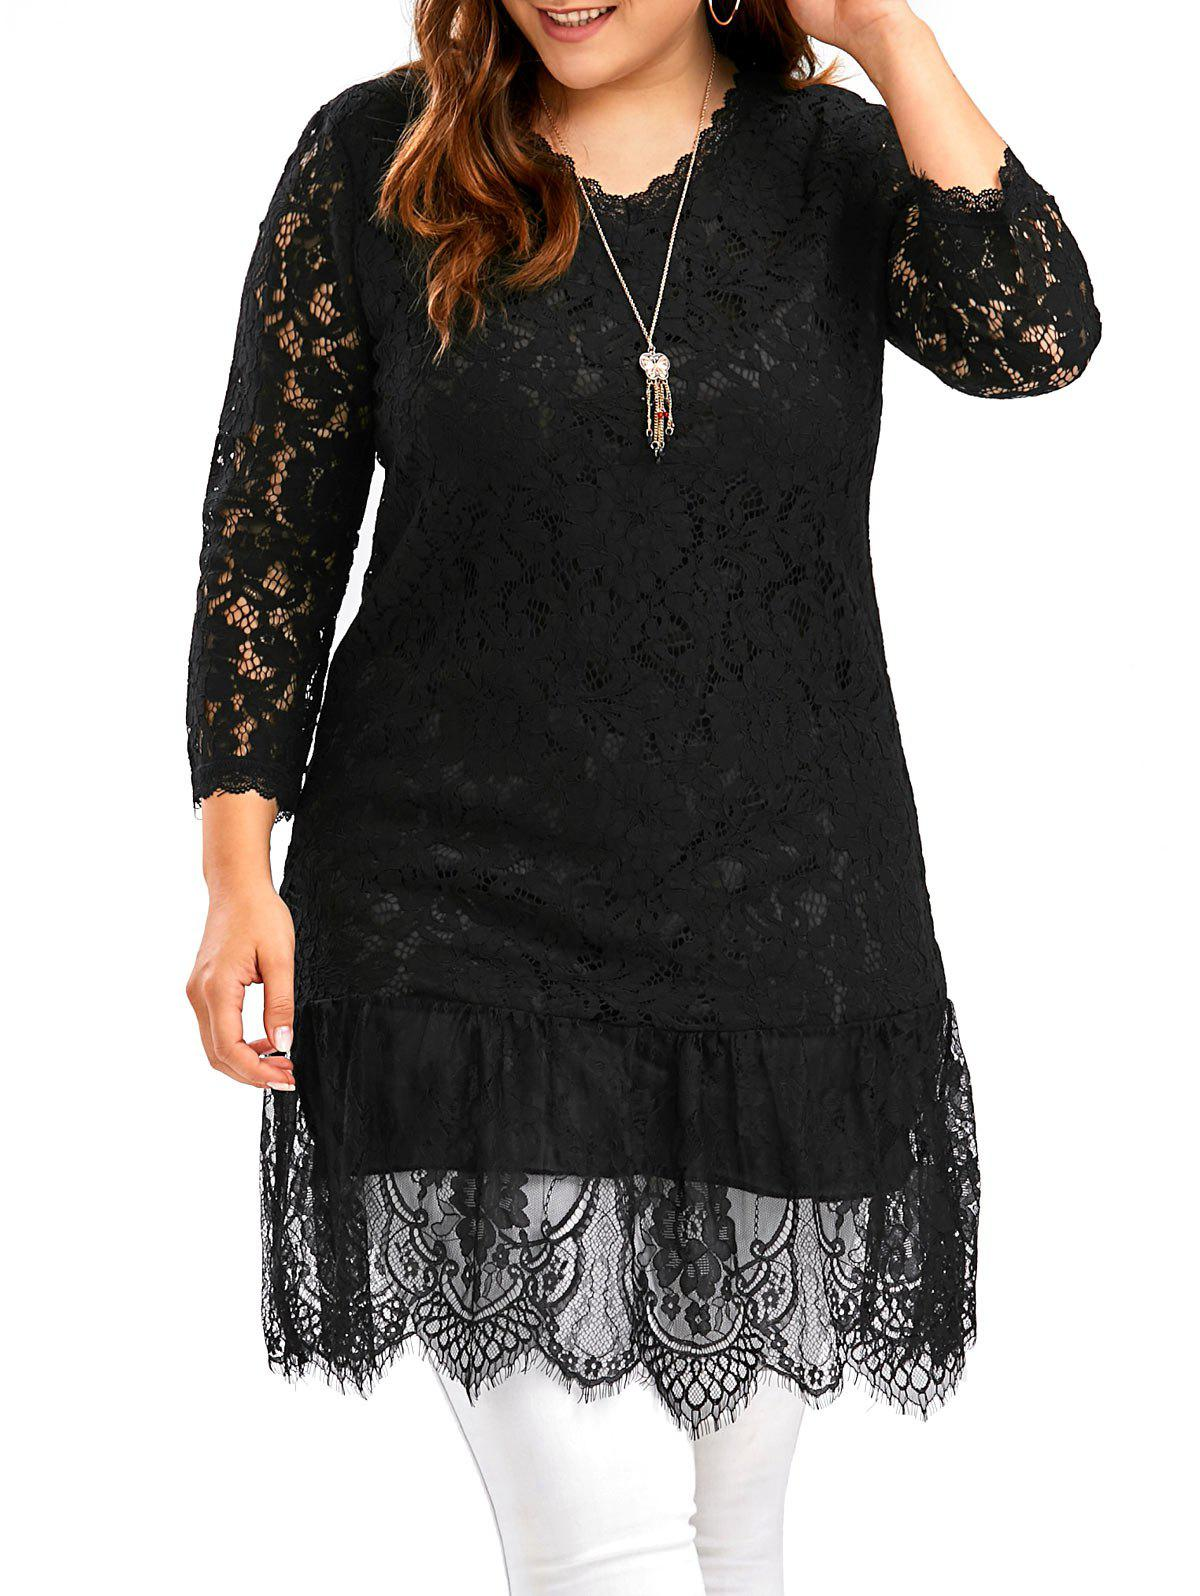 Openwork Plus Size Long Scalloped Lace Top long sleeve scalloped lace cropped top